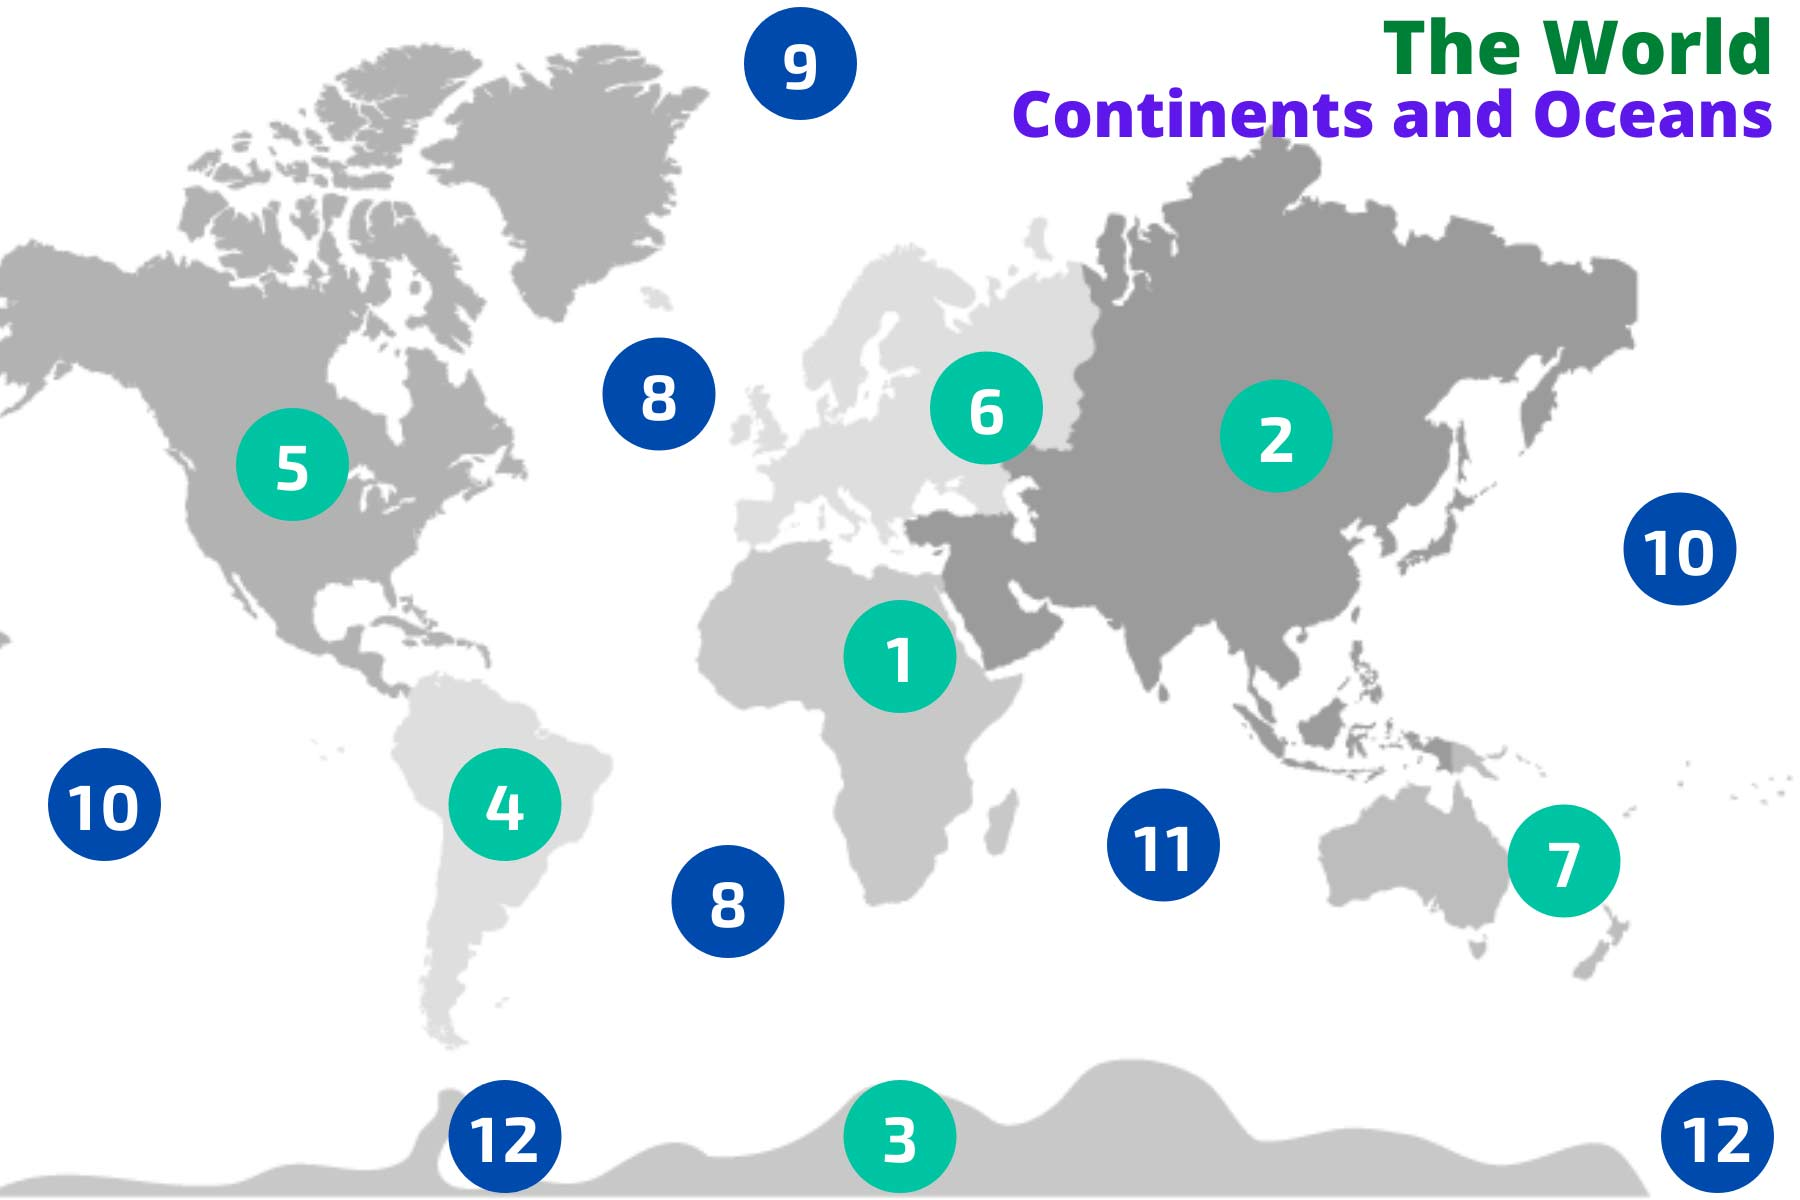 continents and oceans map quiz ocean quiz ocean trivia ocean trivia questions continents and oceans map quiz ocean trivia for kids marine life trivia under the sea trivia ocean animal trivia sea animal trivia ocean trivia facts marine animal trivia continents and oceans games deep sea trivia oceans of the world quiz ocean trivia questions and answers ocean personality test free 7 continents and 5 oceans quiz marine life trivia ocean personality quiz marine life quiz sea animal quiz ocean quiz questions and answers quiz on aquatic animals with answers ocean quiz personality ocean traits test ocean currents quiz world continents and oceans quiz marine life quiz questions and answers world map continents and oceans quiz ocean spirit animal quiz oceans map quiz oceans and seas quiz ocean quiz good ocean quiz questions oceans and seas of the world quiz under the sea trivia 7 continents and oceans quiz ocean trivia printable ocean's 8 quiz ocean animal trivia pacific map quiz ocean quiz for students sea animal trivia ocean animal quiz marine animal quiz ocean floor quiz marine animal trivia oceans trivia quiz about oceans 7 continents and 4 oceans quiz ocean quiz for kids continents and oceans of the world quiz 5 oceans quiz pacific island map quiz continents and oceans quiz continents and oceans quiz game continents and oceans map quiz continents and oceans games seterra continents and oceans 7 continents and 5 oceans quiz world continents and oceans quiz world map continents and oceans quiz continents and oceans online game 7 continents and oceans quiz lizard point continents and oceans fill in the blank continents and oceans map continents and oceans map game seterra oceans and continents 7 continents and 4 oceans quiz continents and oceans of the world quiz